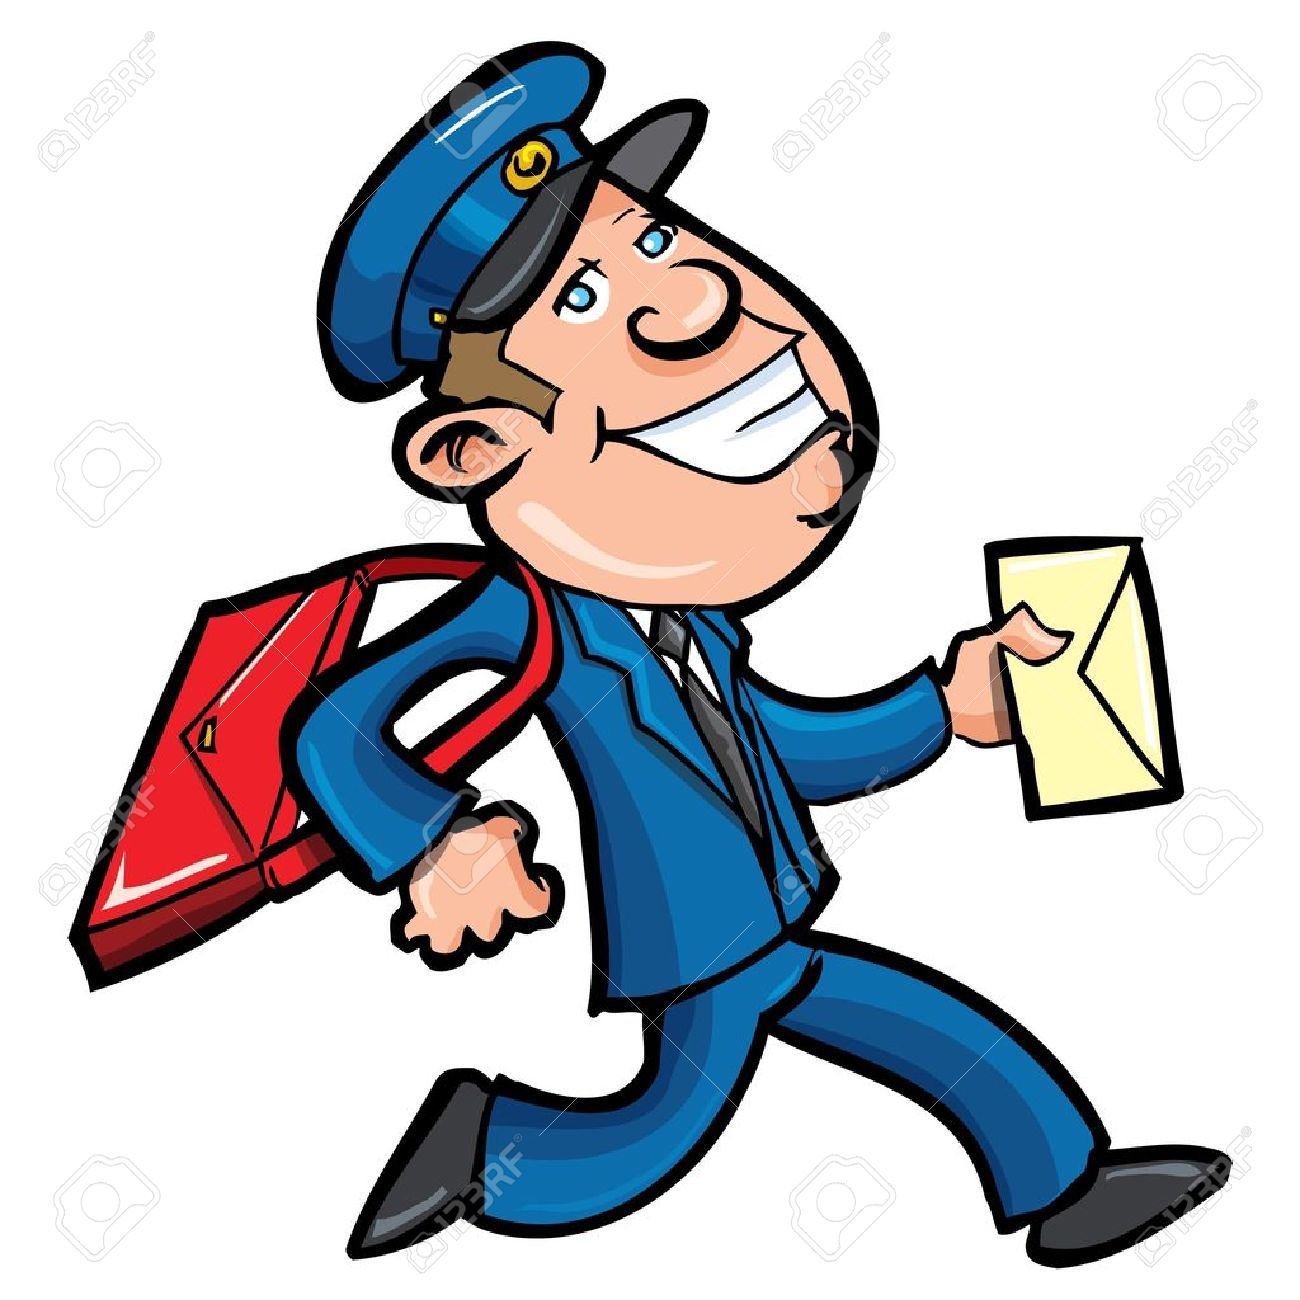 17 955 mail man stock vector illustration and royalty free mail man